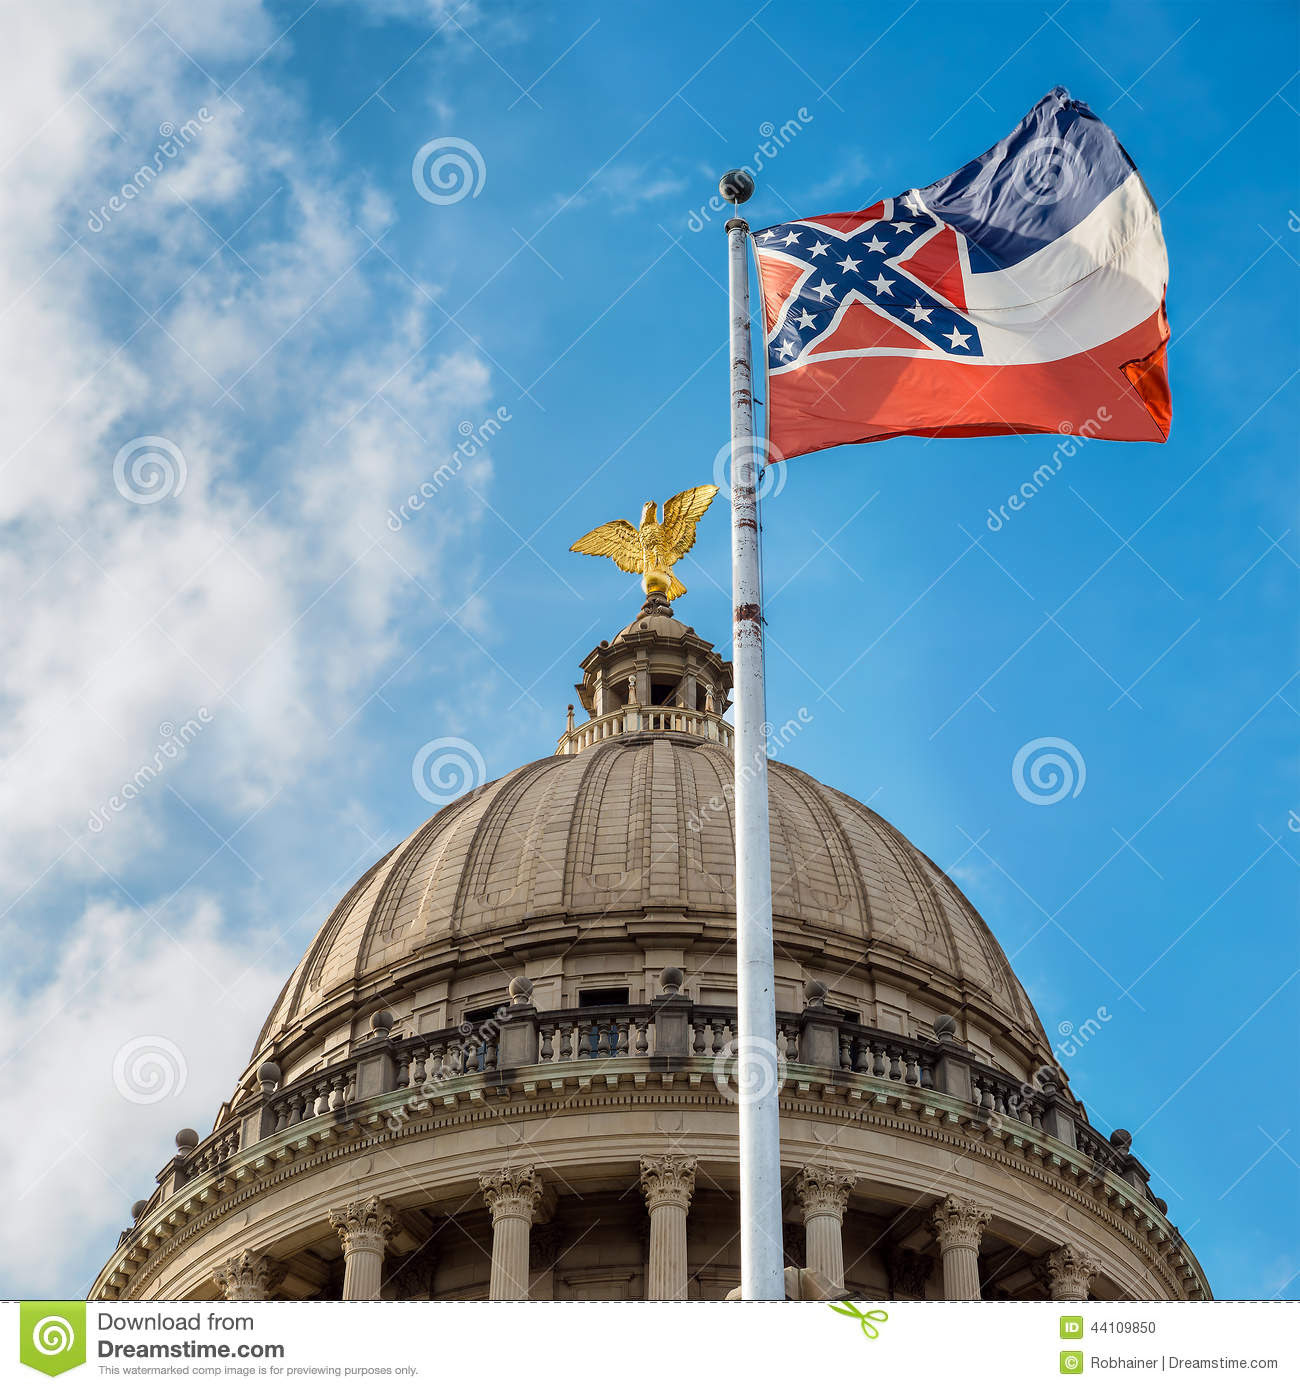 http://thumbs.dreamstime.com/z/mississippi-state-flag-flying-front-capitol-building-jackson-44109850.jpg